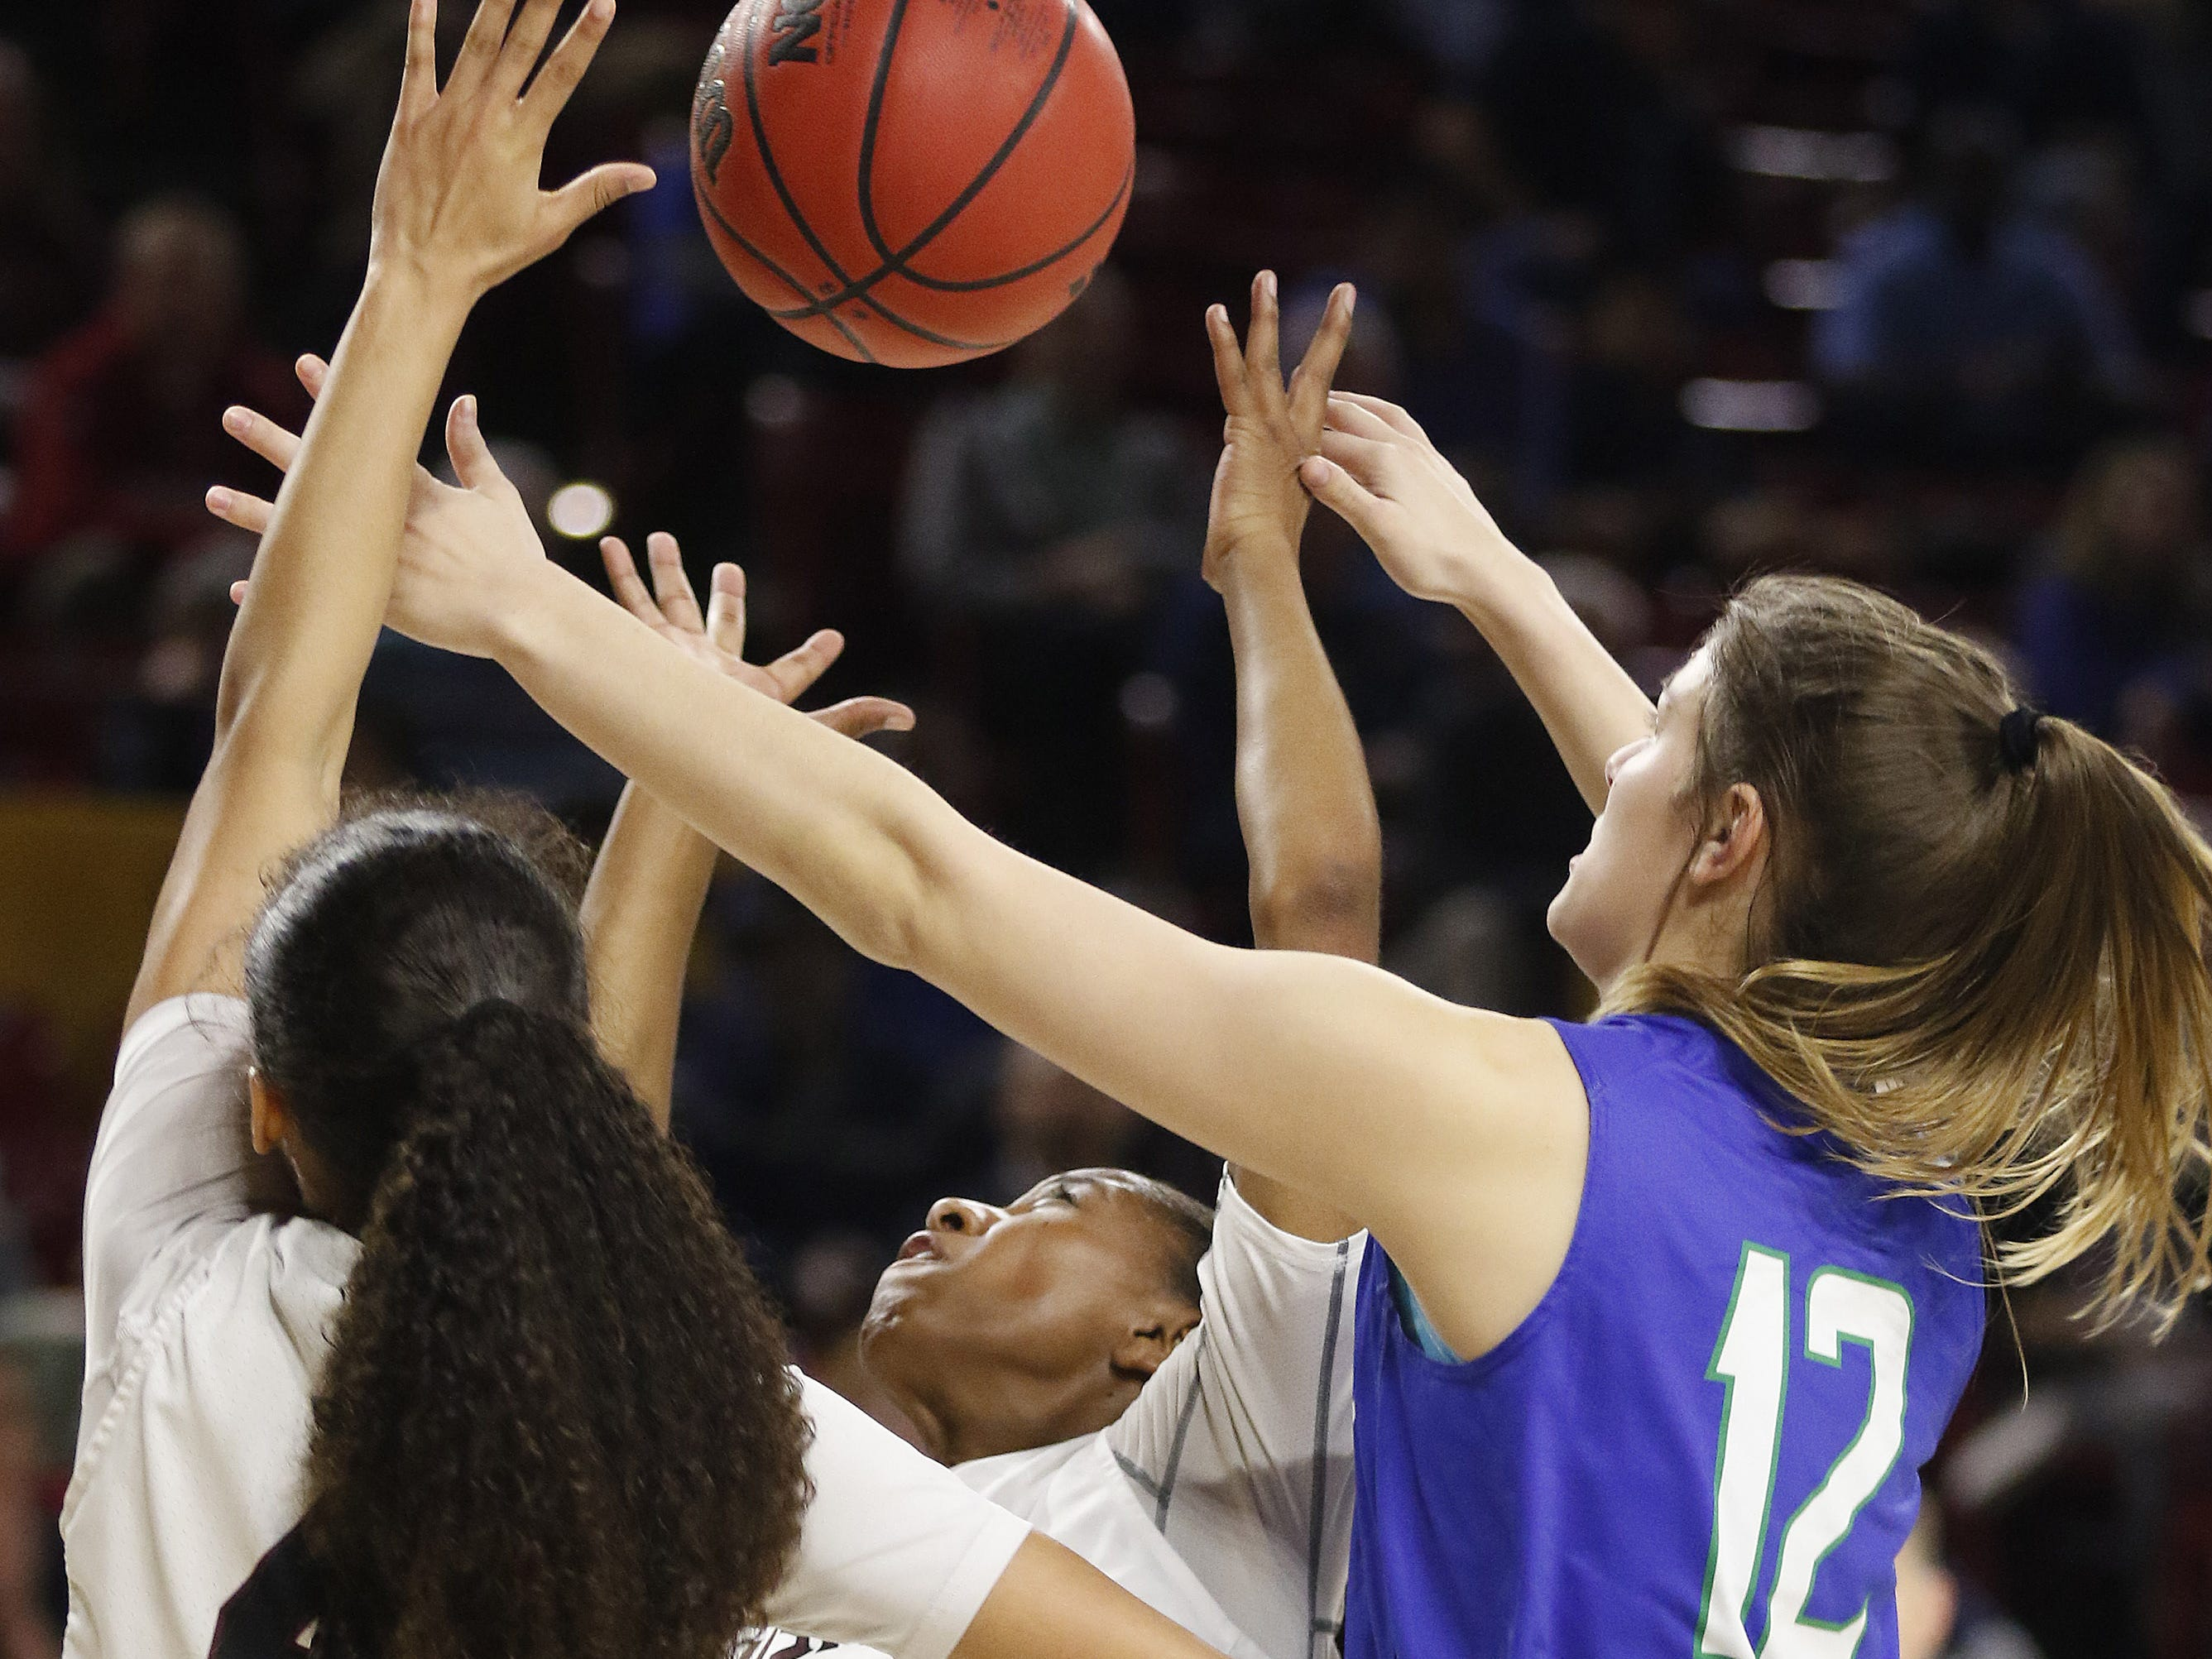 Xavier's Addie PutnamÊ(12) battles for a rebound with Hamilton's Amyah Reaves (4) and Victoria Davis (10) during the 6A Girls State Championship at Wells Fargo Arena in Tempe Tuesday, Feb 26, 2019.